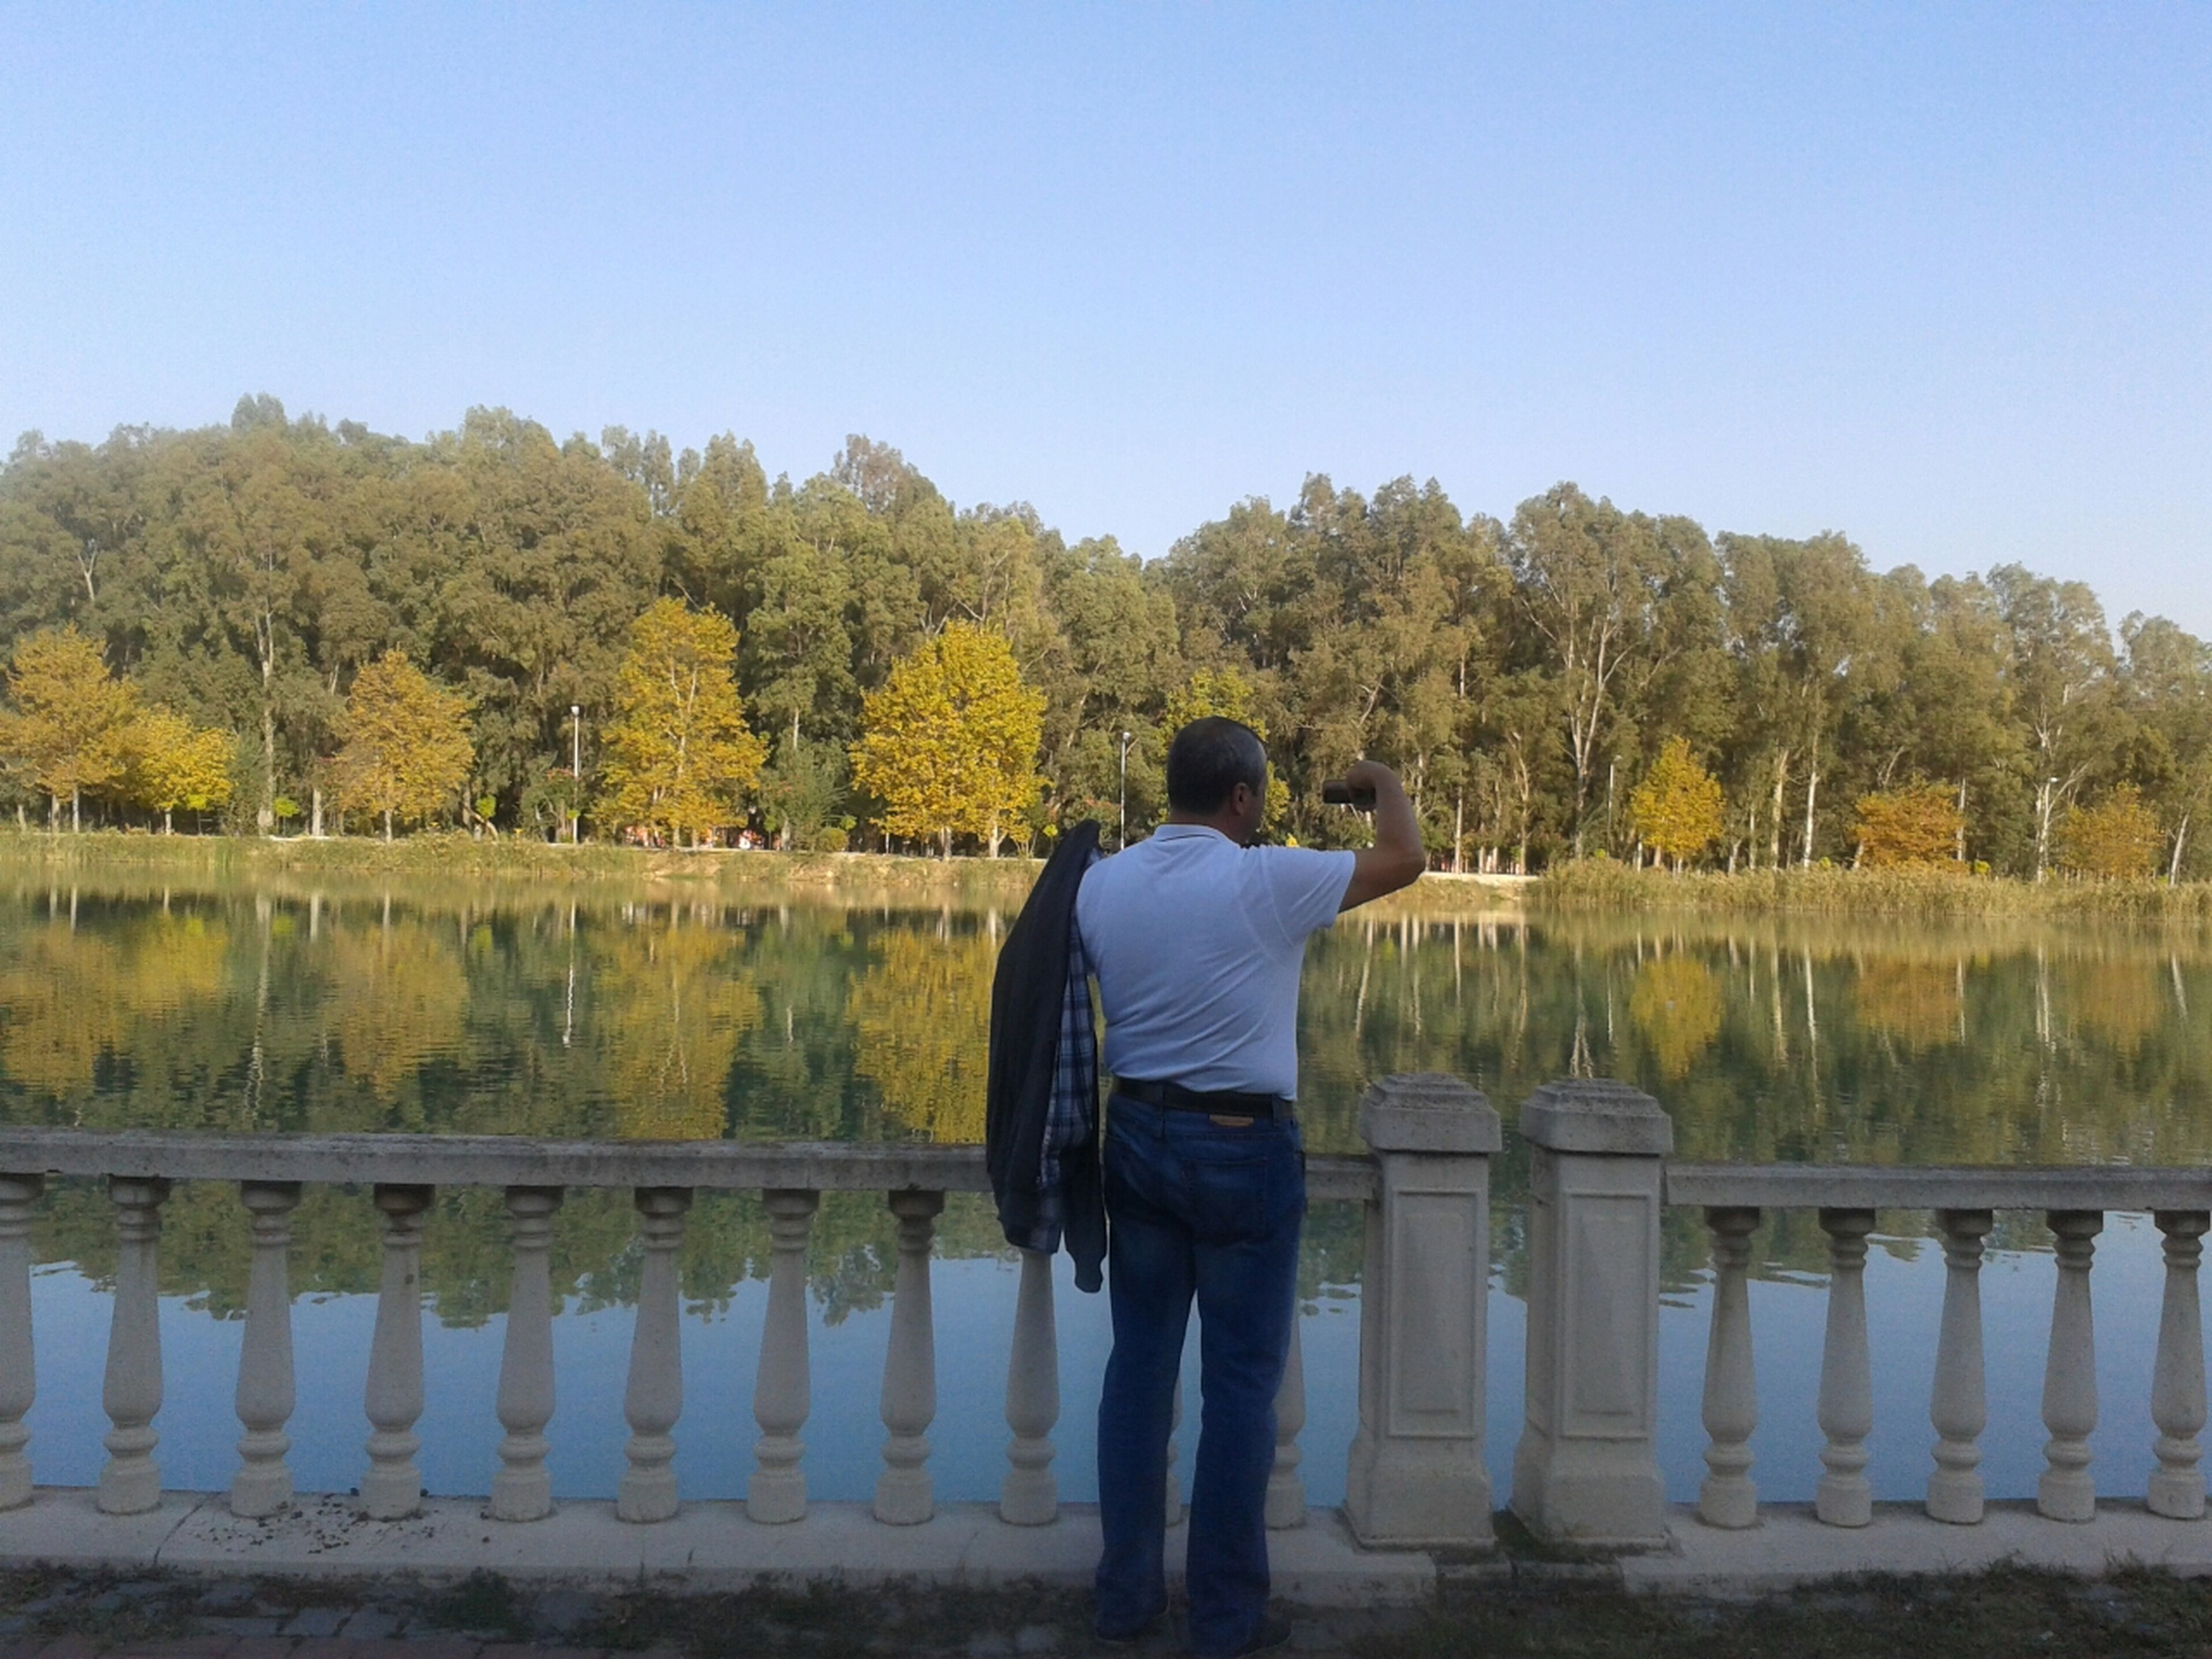 rear view, tree, clear sky, standing, lifestyles, water, leisure activity, casual clothing, full length, tranquility, tranquil scene, nature, railing, beauty in nature, men, person, scenics, lake